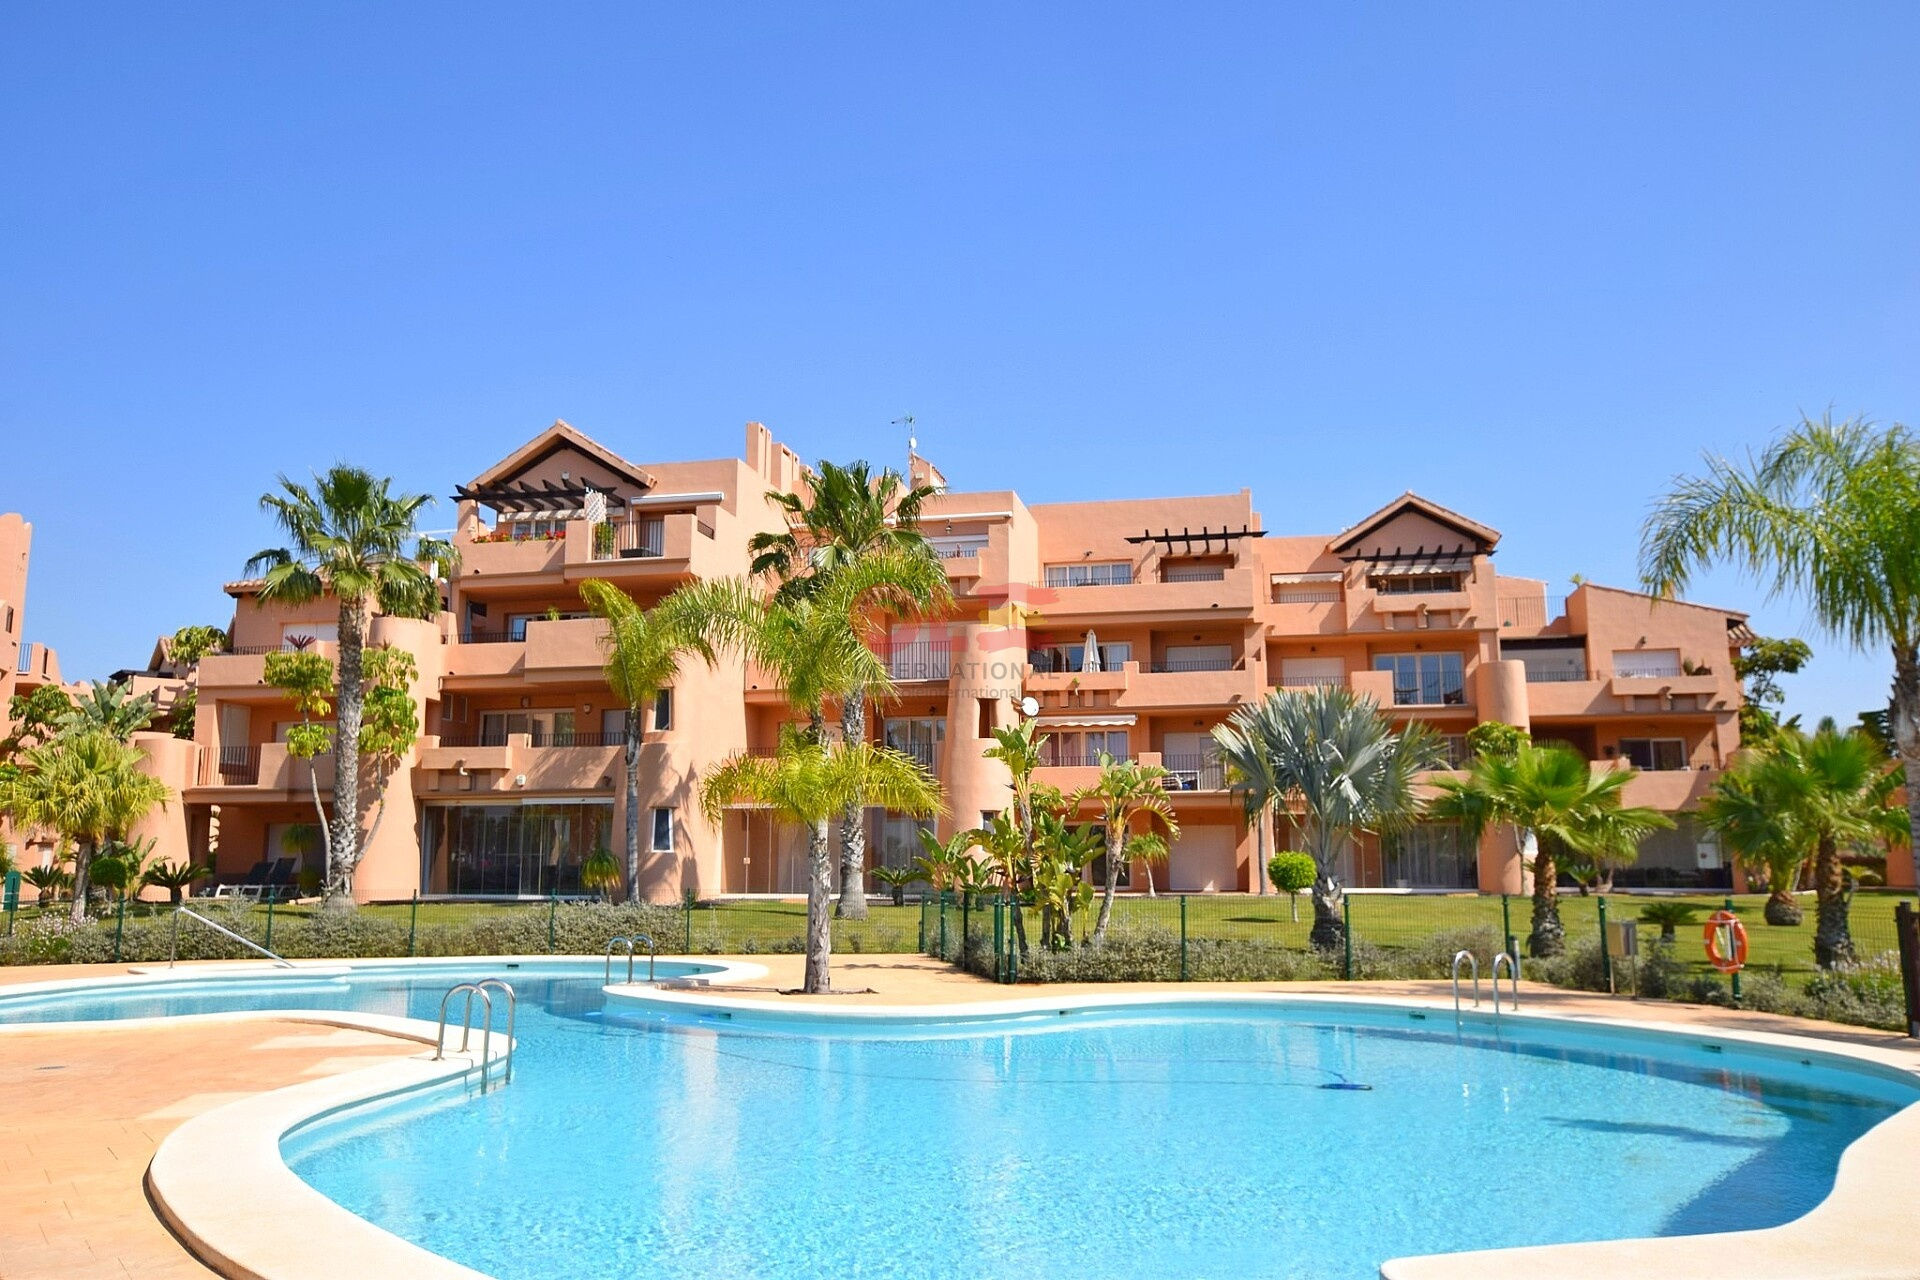 Brand new luxury apartments in Mar Menor Golf Resort in Murcia